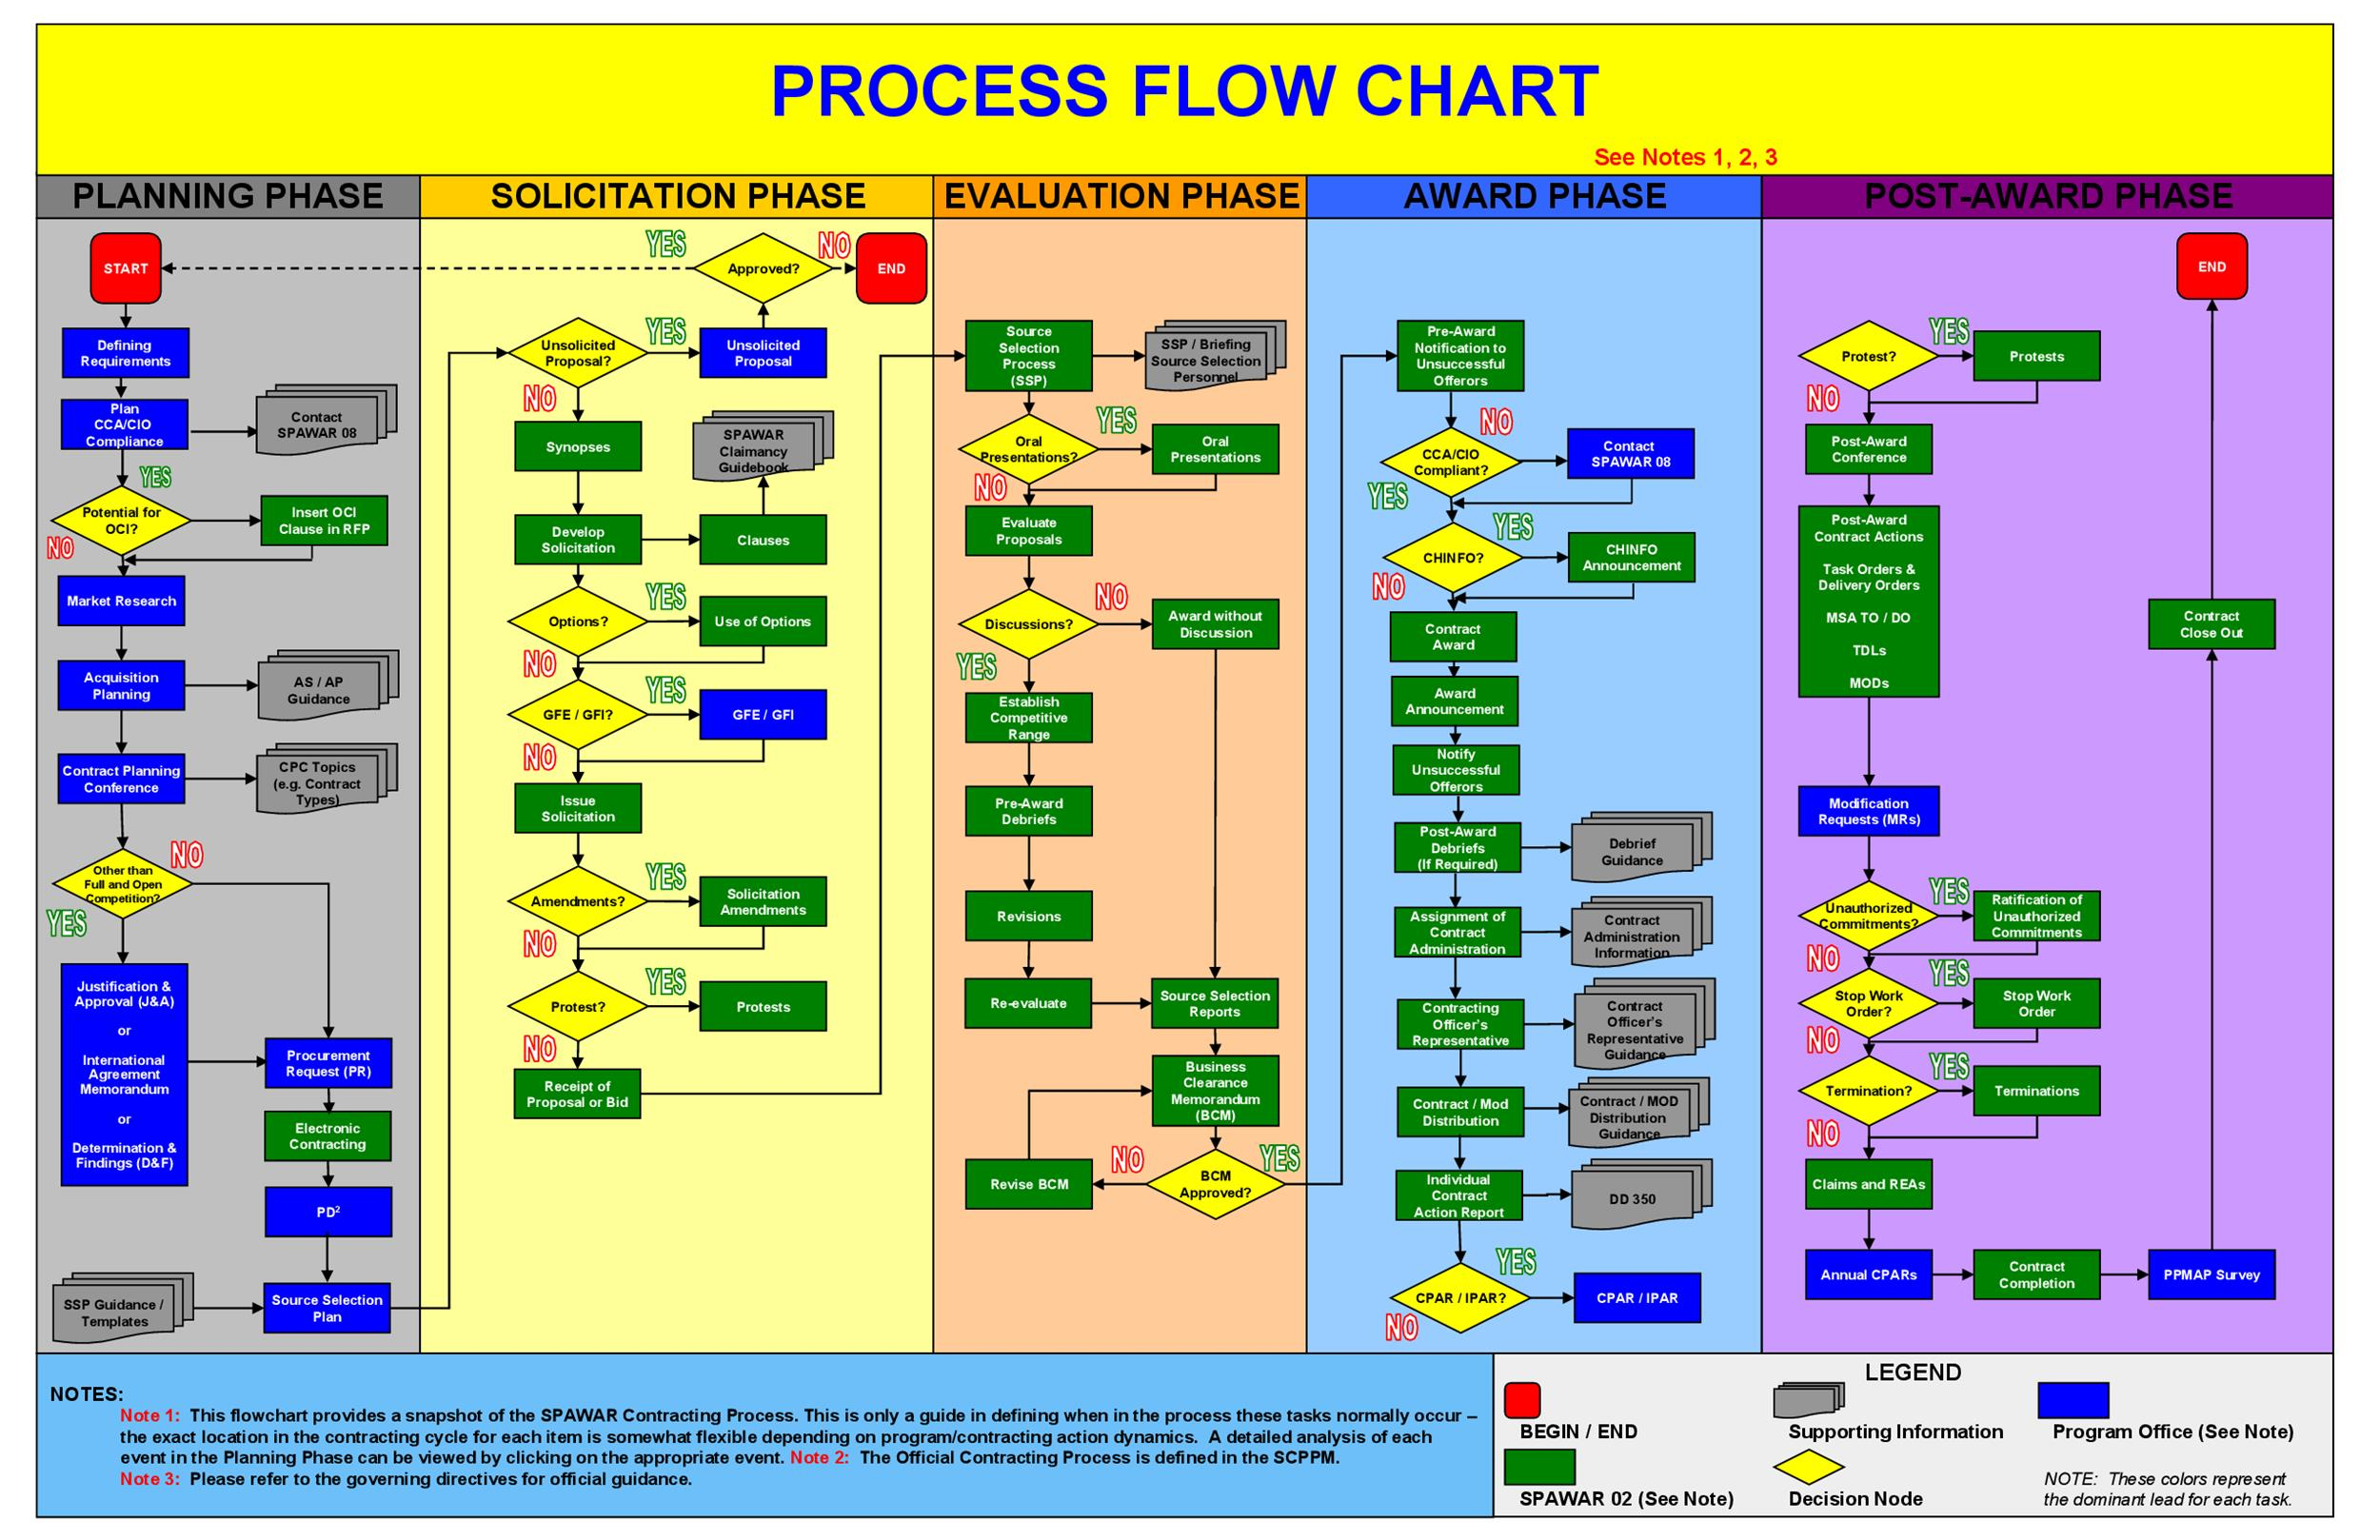 41 Fantastic Flow Chart Templates Word Excel Power Point